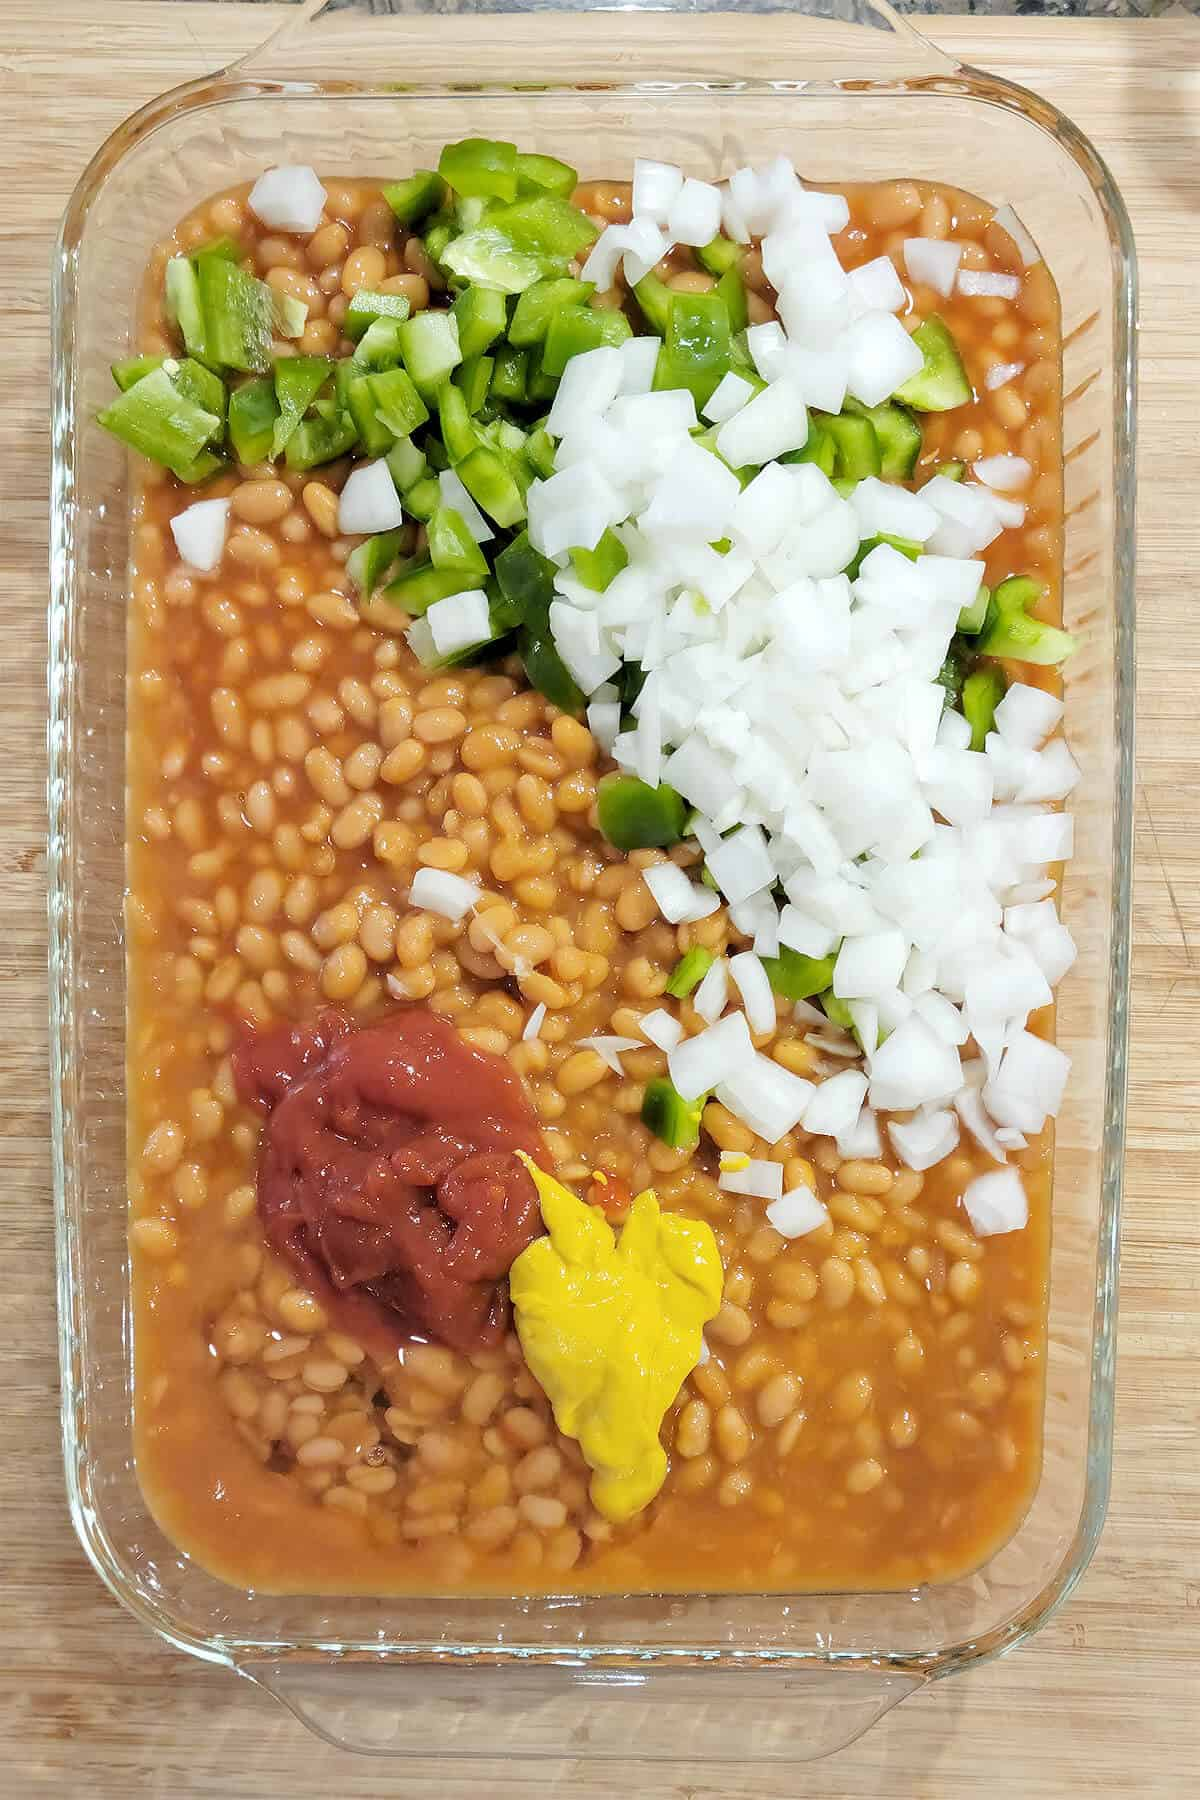 Onions, bell pepper, ketchup, mustard, and syrup added to dish with the beans.